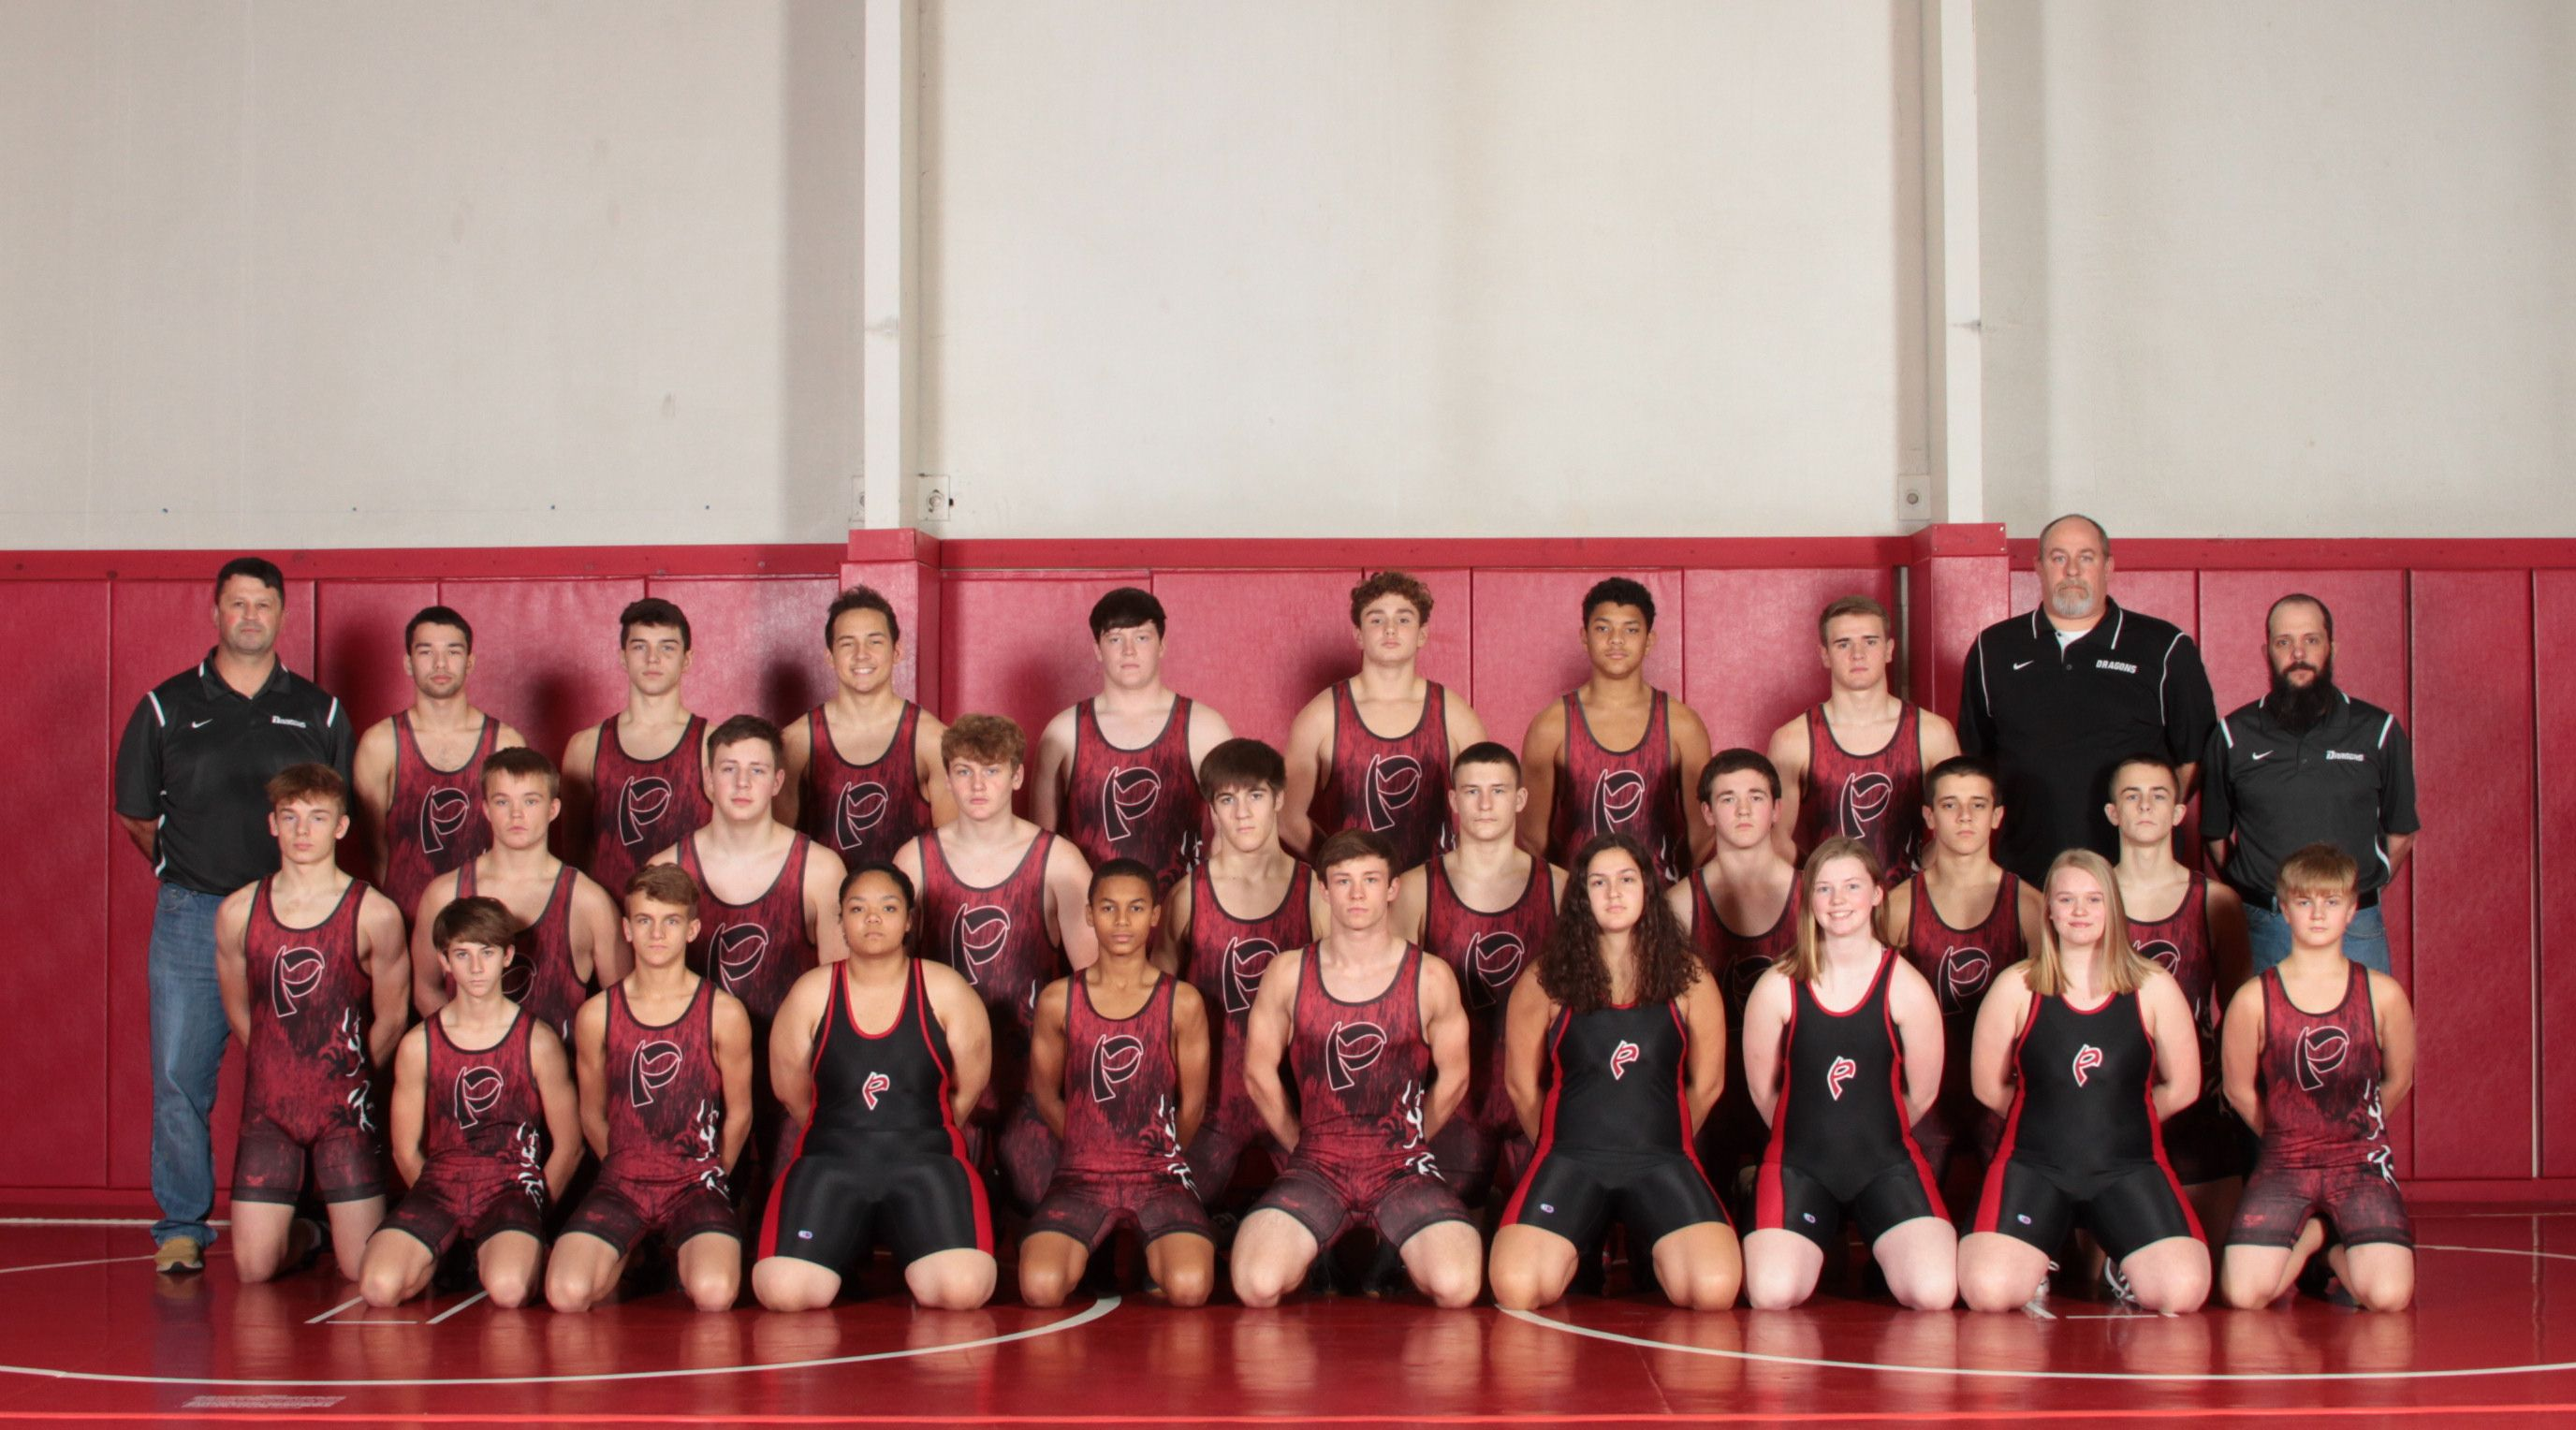 A photo of the wrestling team